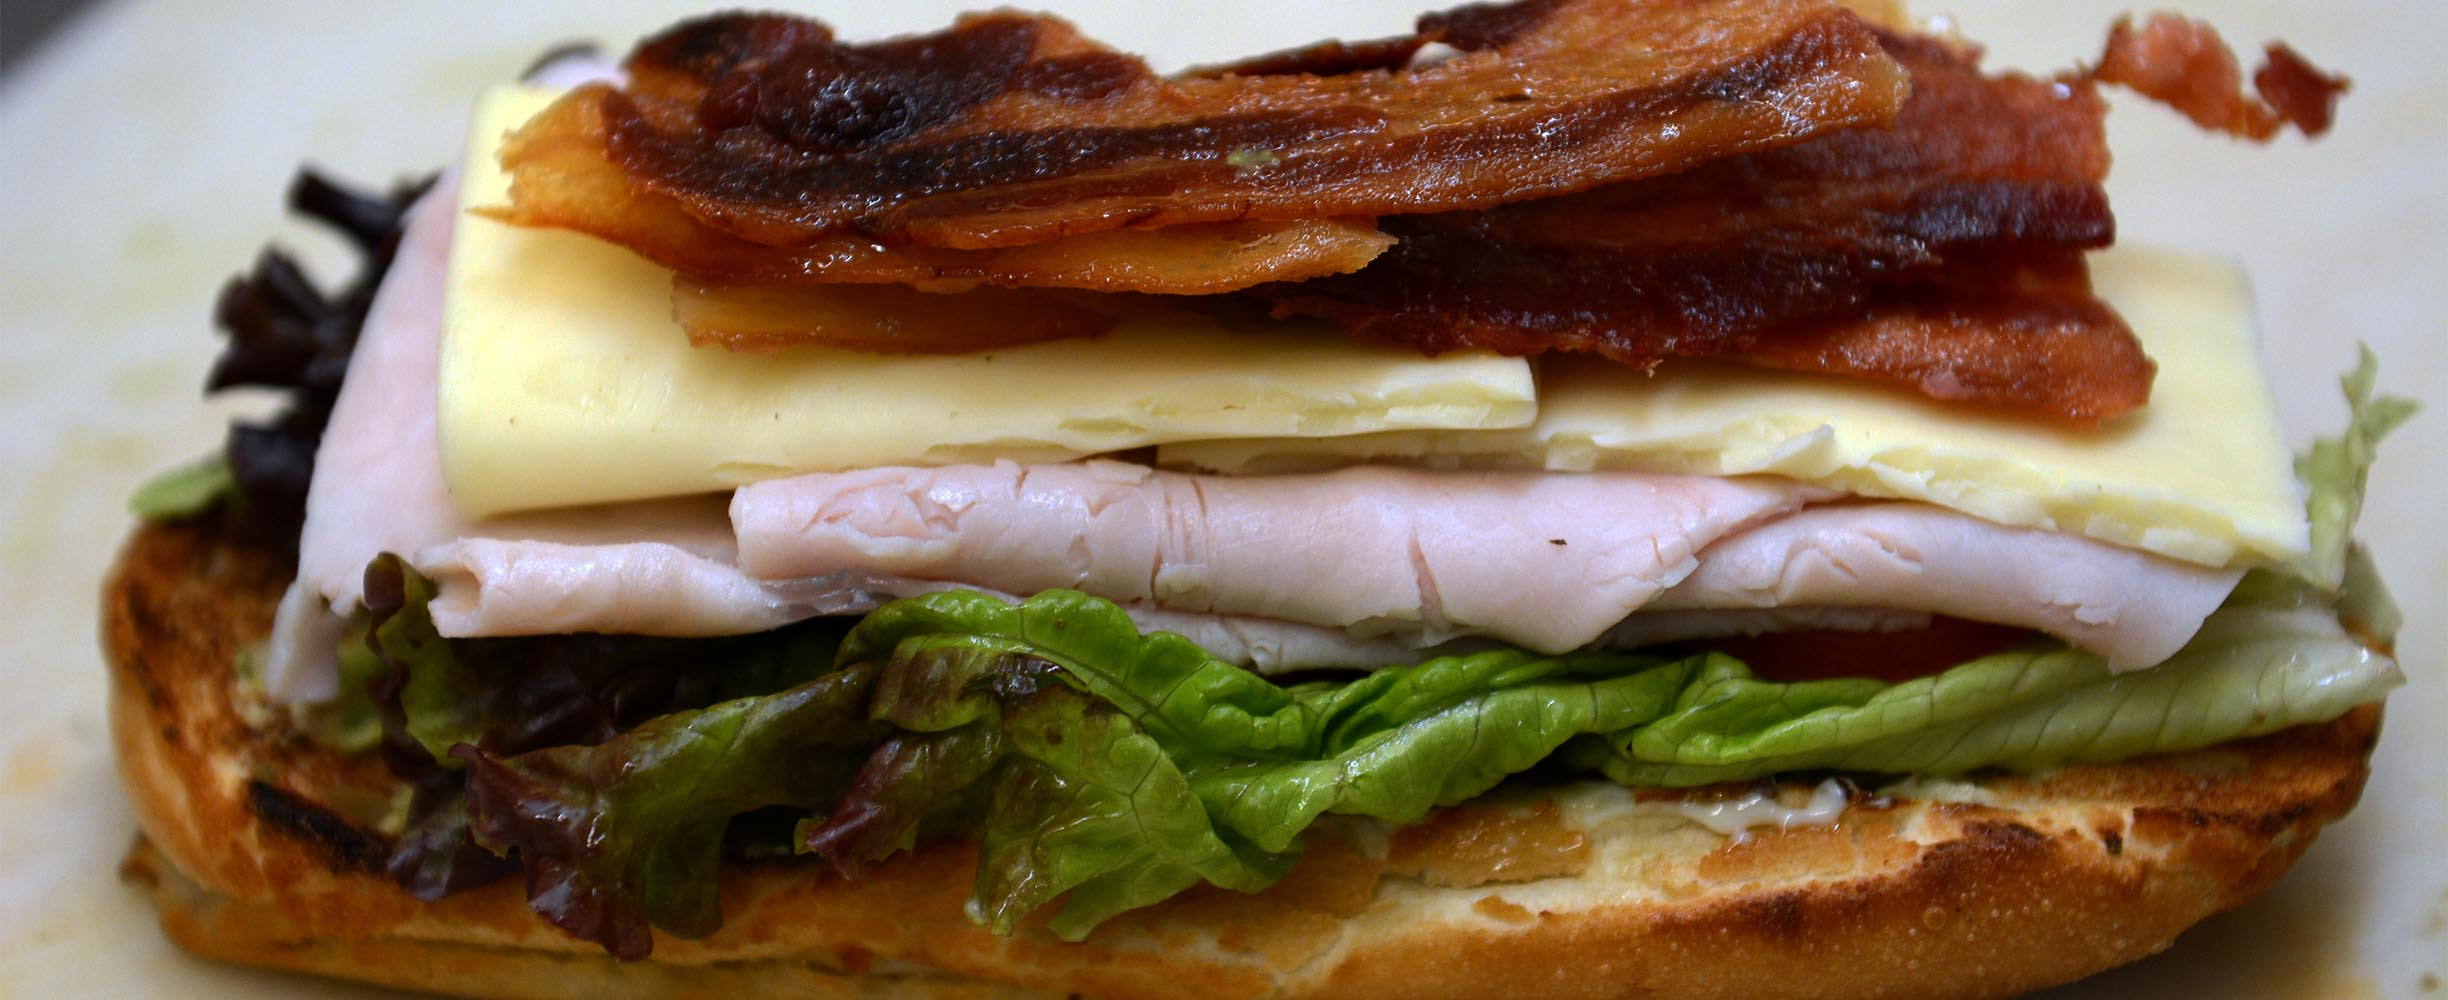 A sandwich with bacon, cheese, turkey, lettuce and tomato plus mayonnaise and spices is just fantastic!